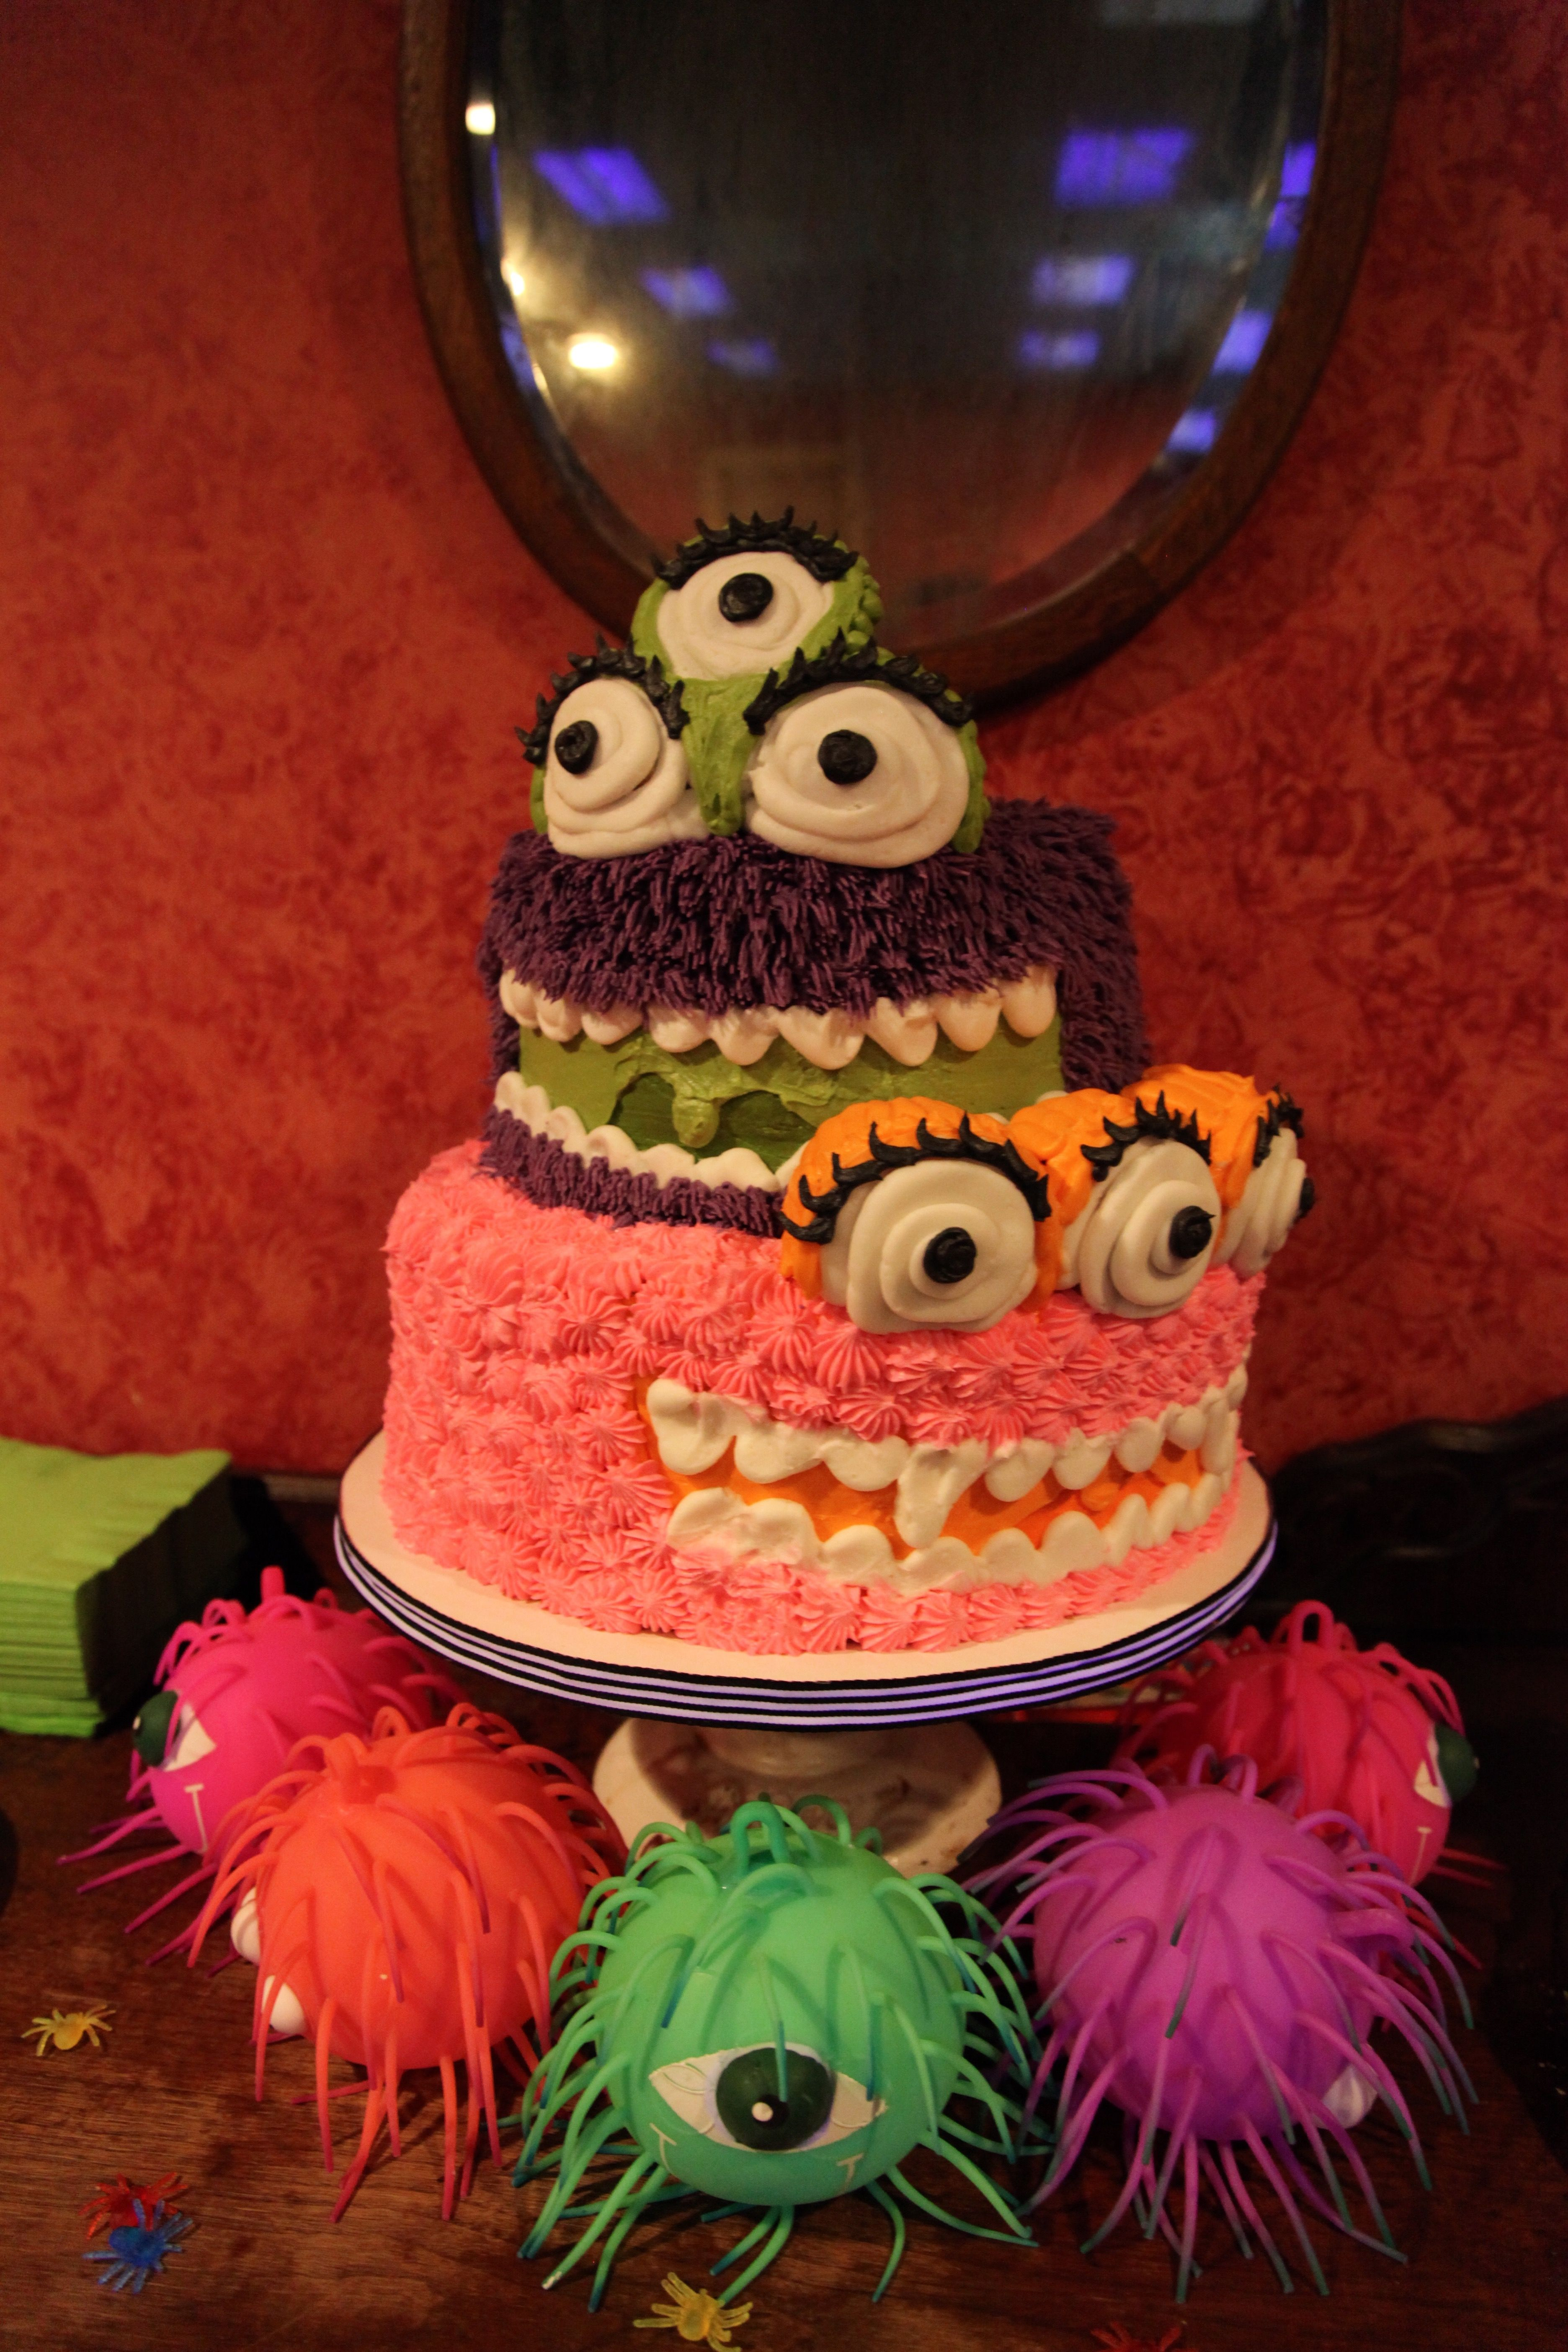 Monster Cake for Monster Mini Golf Glow Birthday Party!   4th ... on fifa party ideas, golf invitations, spades party ideas, maze party ideas, donkey kong party ideas, hiking party ideas, inspirational party ideas, honeymoon party ideas, band party ideas, jiu jitsu party ideas, golf decorations, giants baseball party ideas, t ball party ideas, traveling party ideas, ffa party ideas, automotive party ideas, world travel party ideas, finance party ideas, 100 year party ideas, ultimate party ideas,